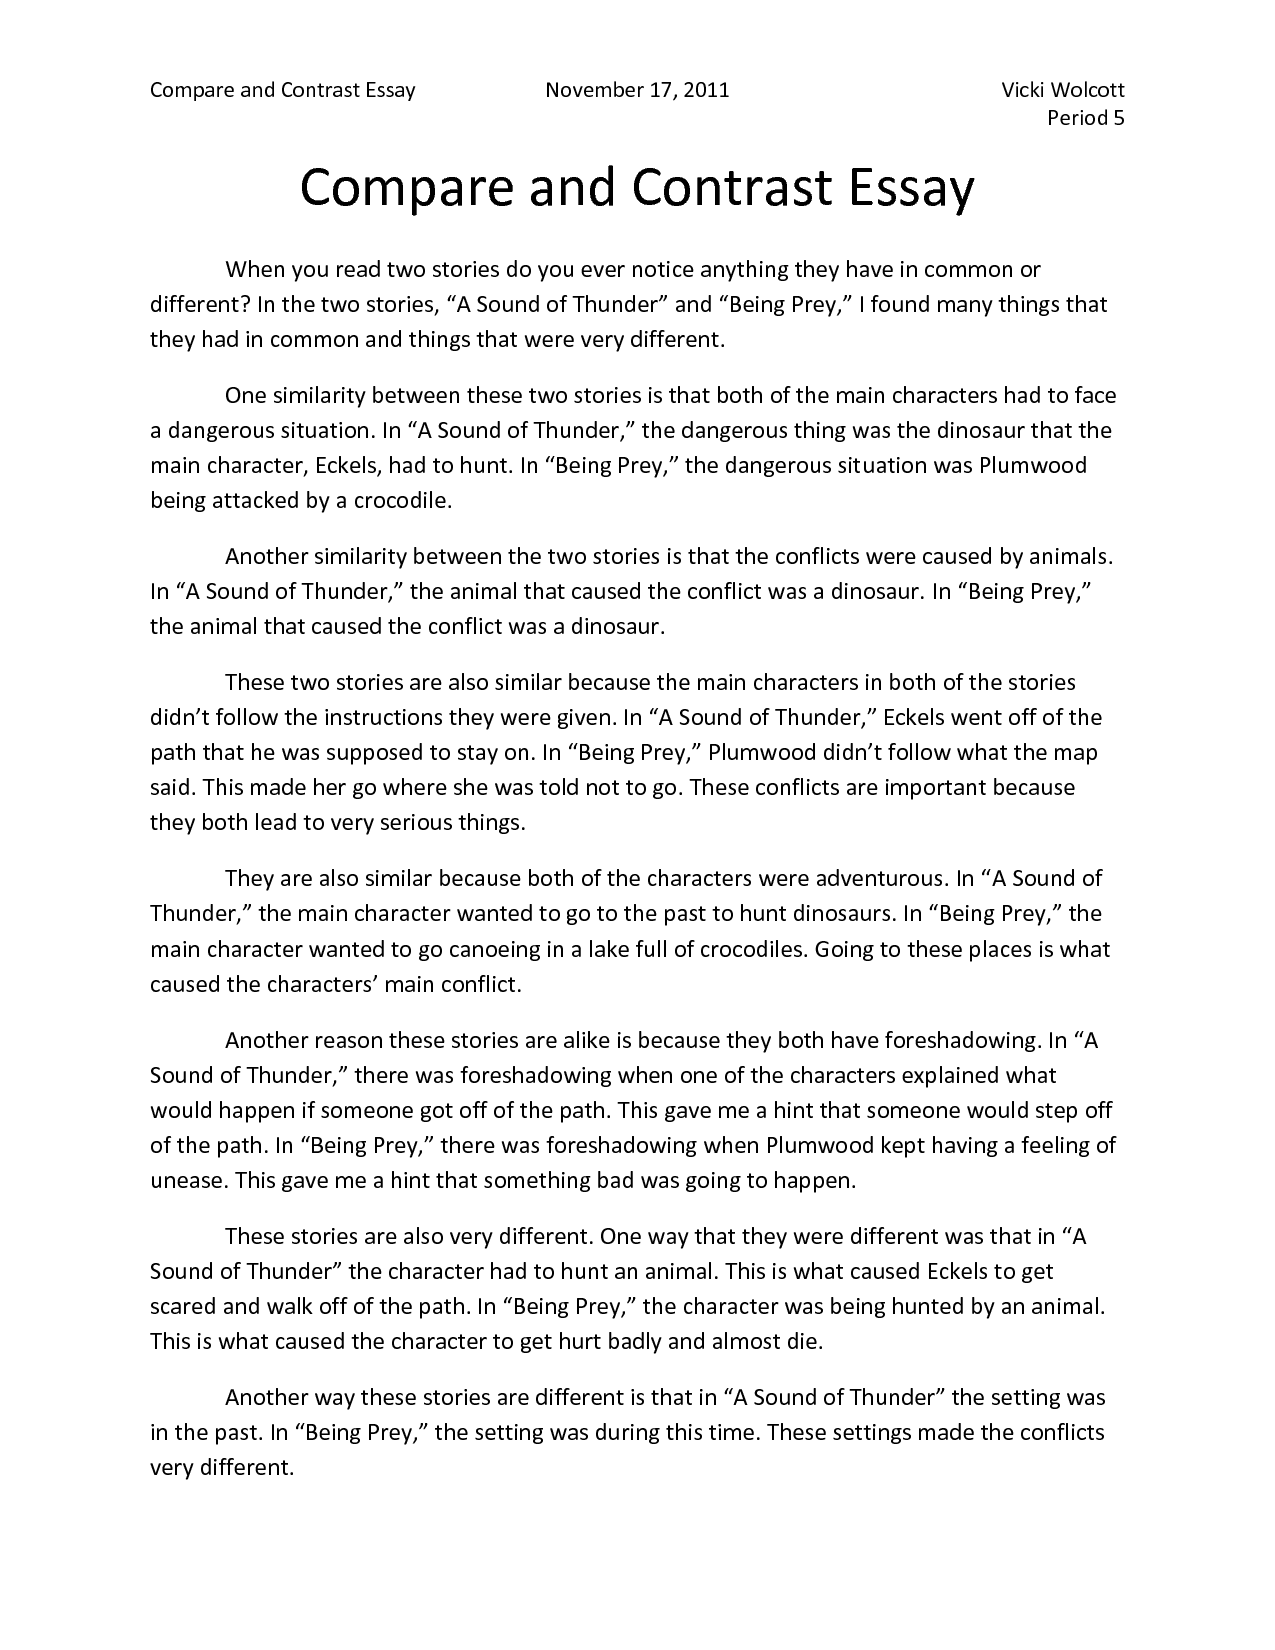 003 Essay Example Compare And Contrast Samples Perfect Essays Introduction How To Write College Awful Comparison Pdf Template 5th Grade Sample 6th Full